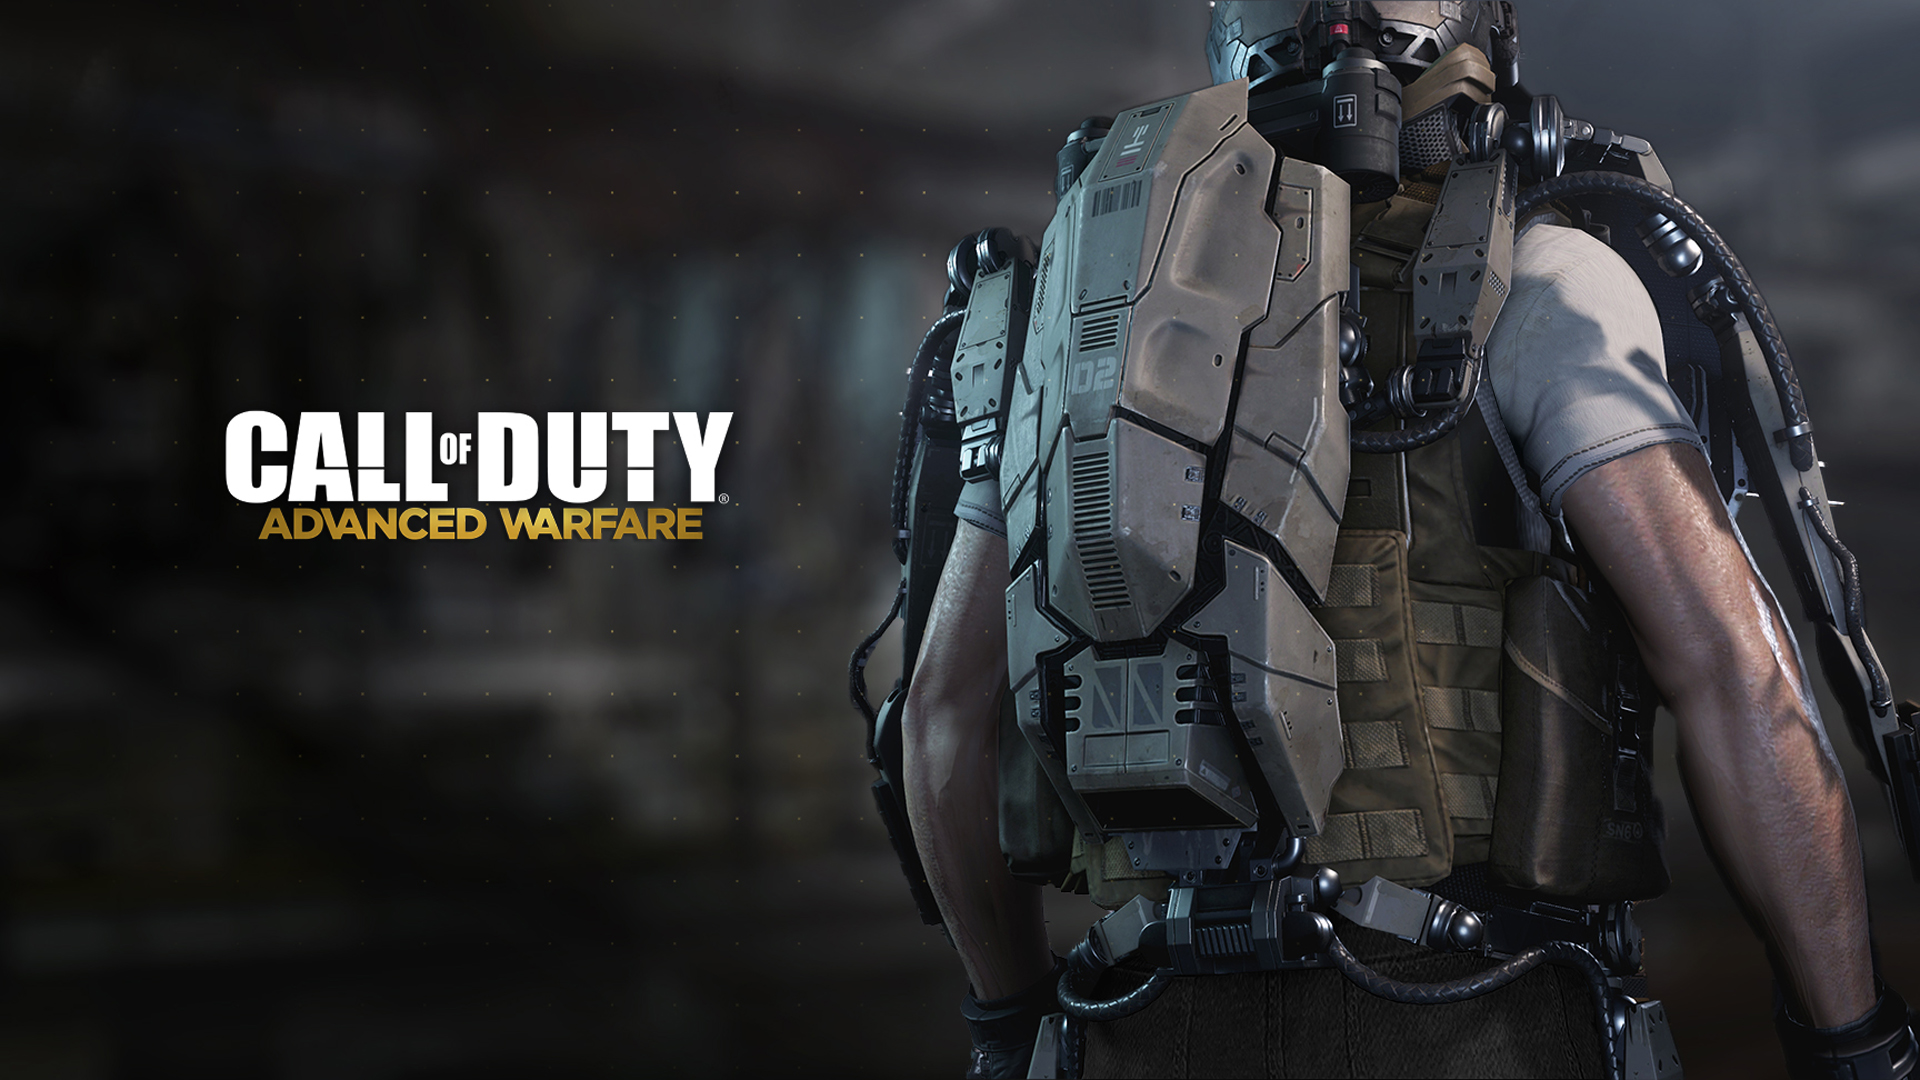 سال نو و Call of Duty: Advanced Warfare